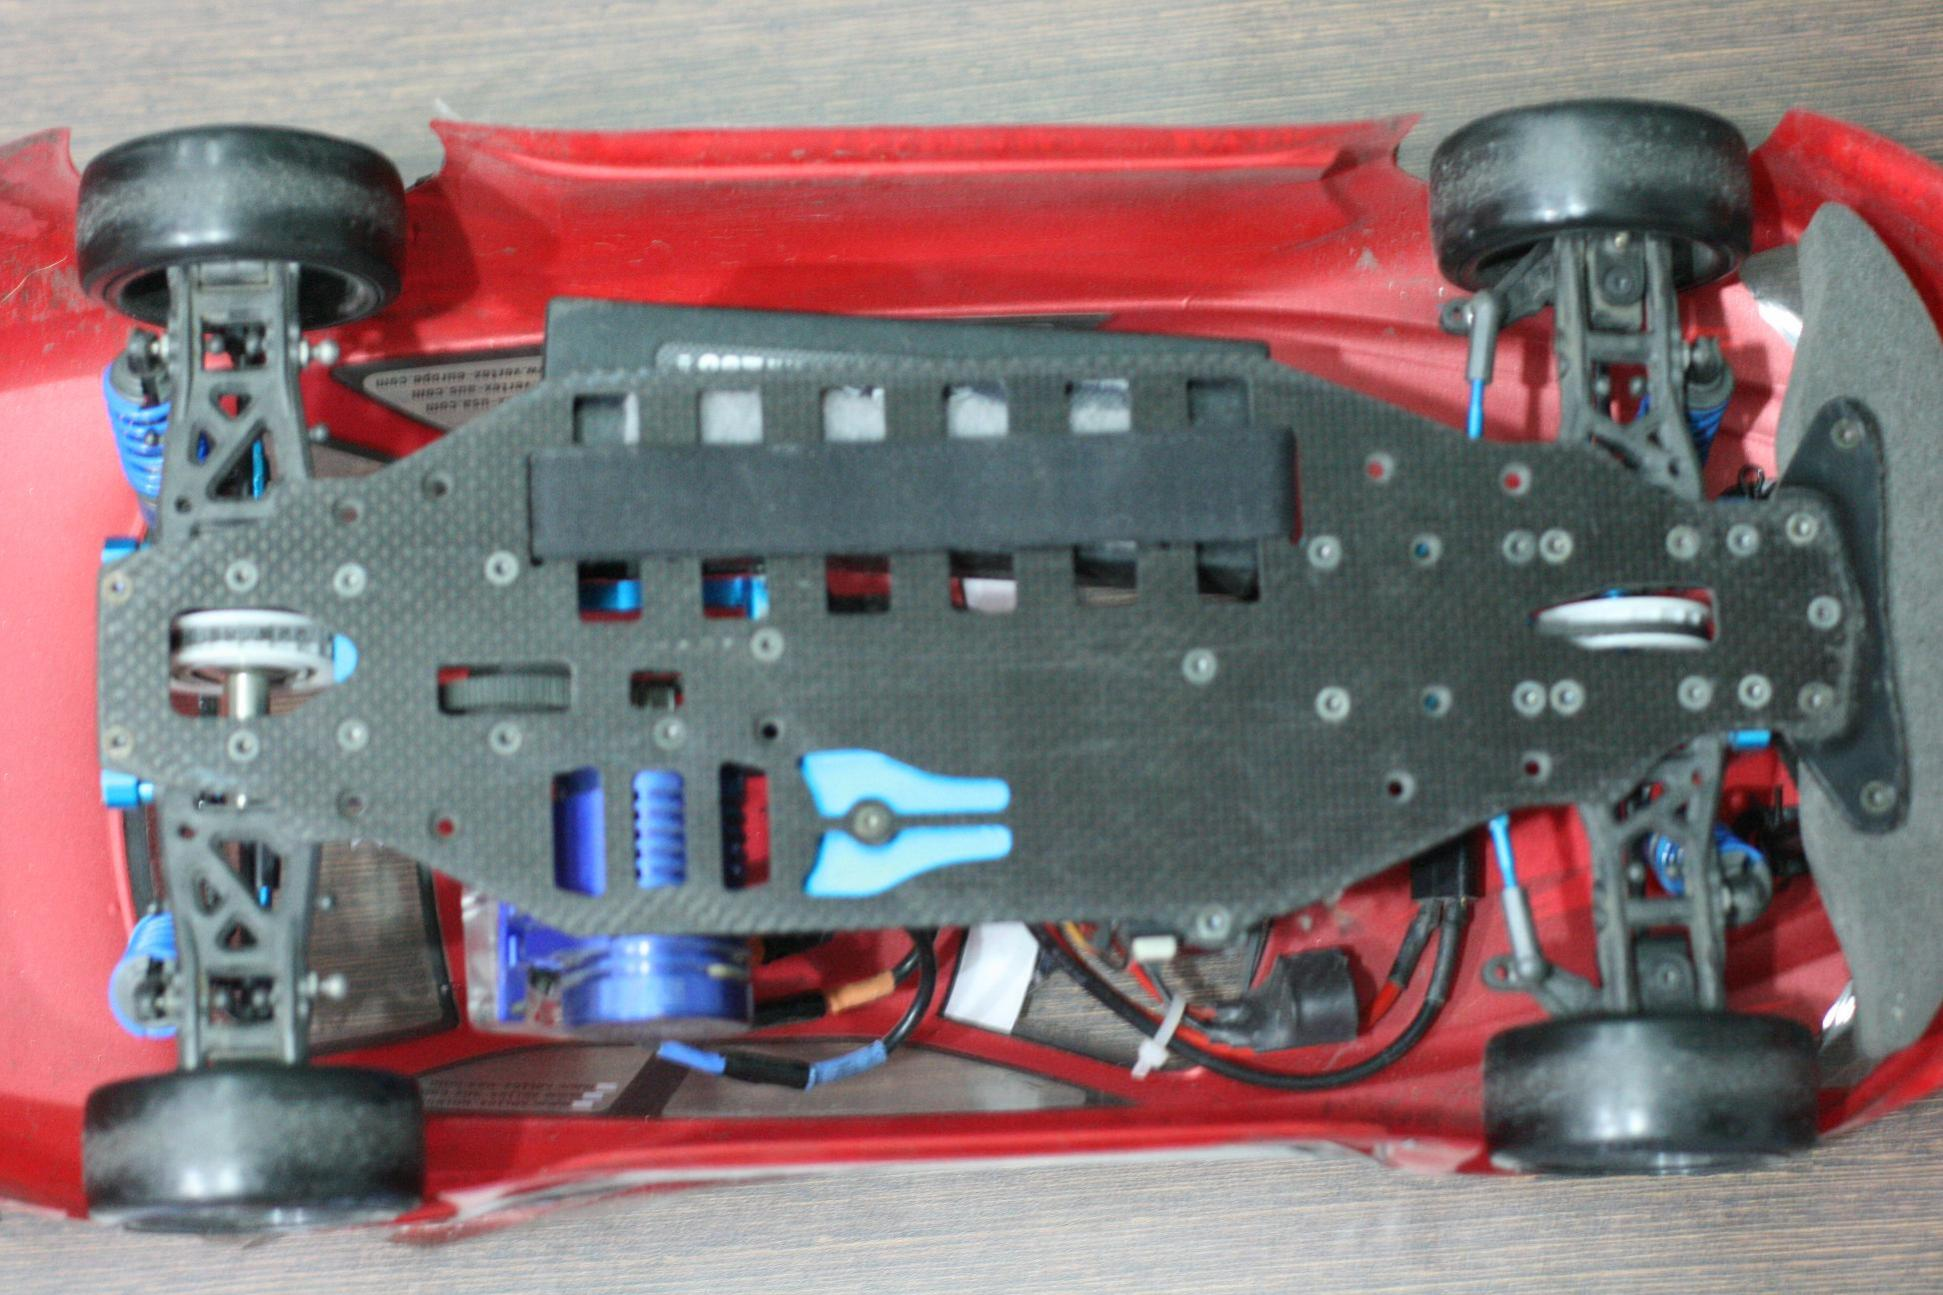 Trf: WTS : 1/10 Tamiya TRF 415 RTR With Sanwa Transmiter And